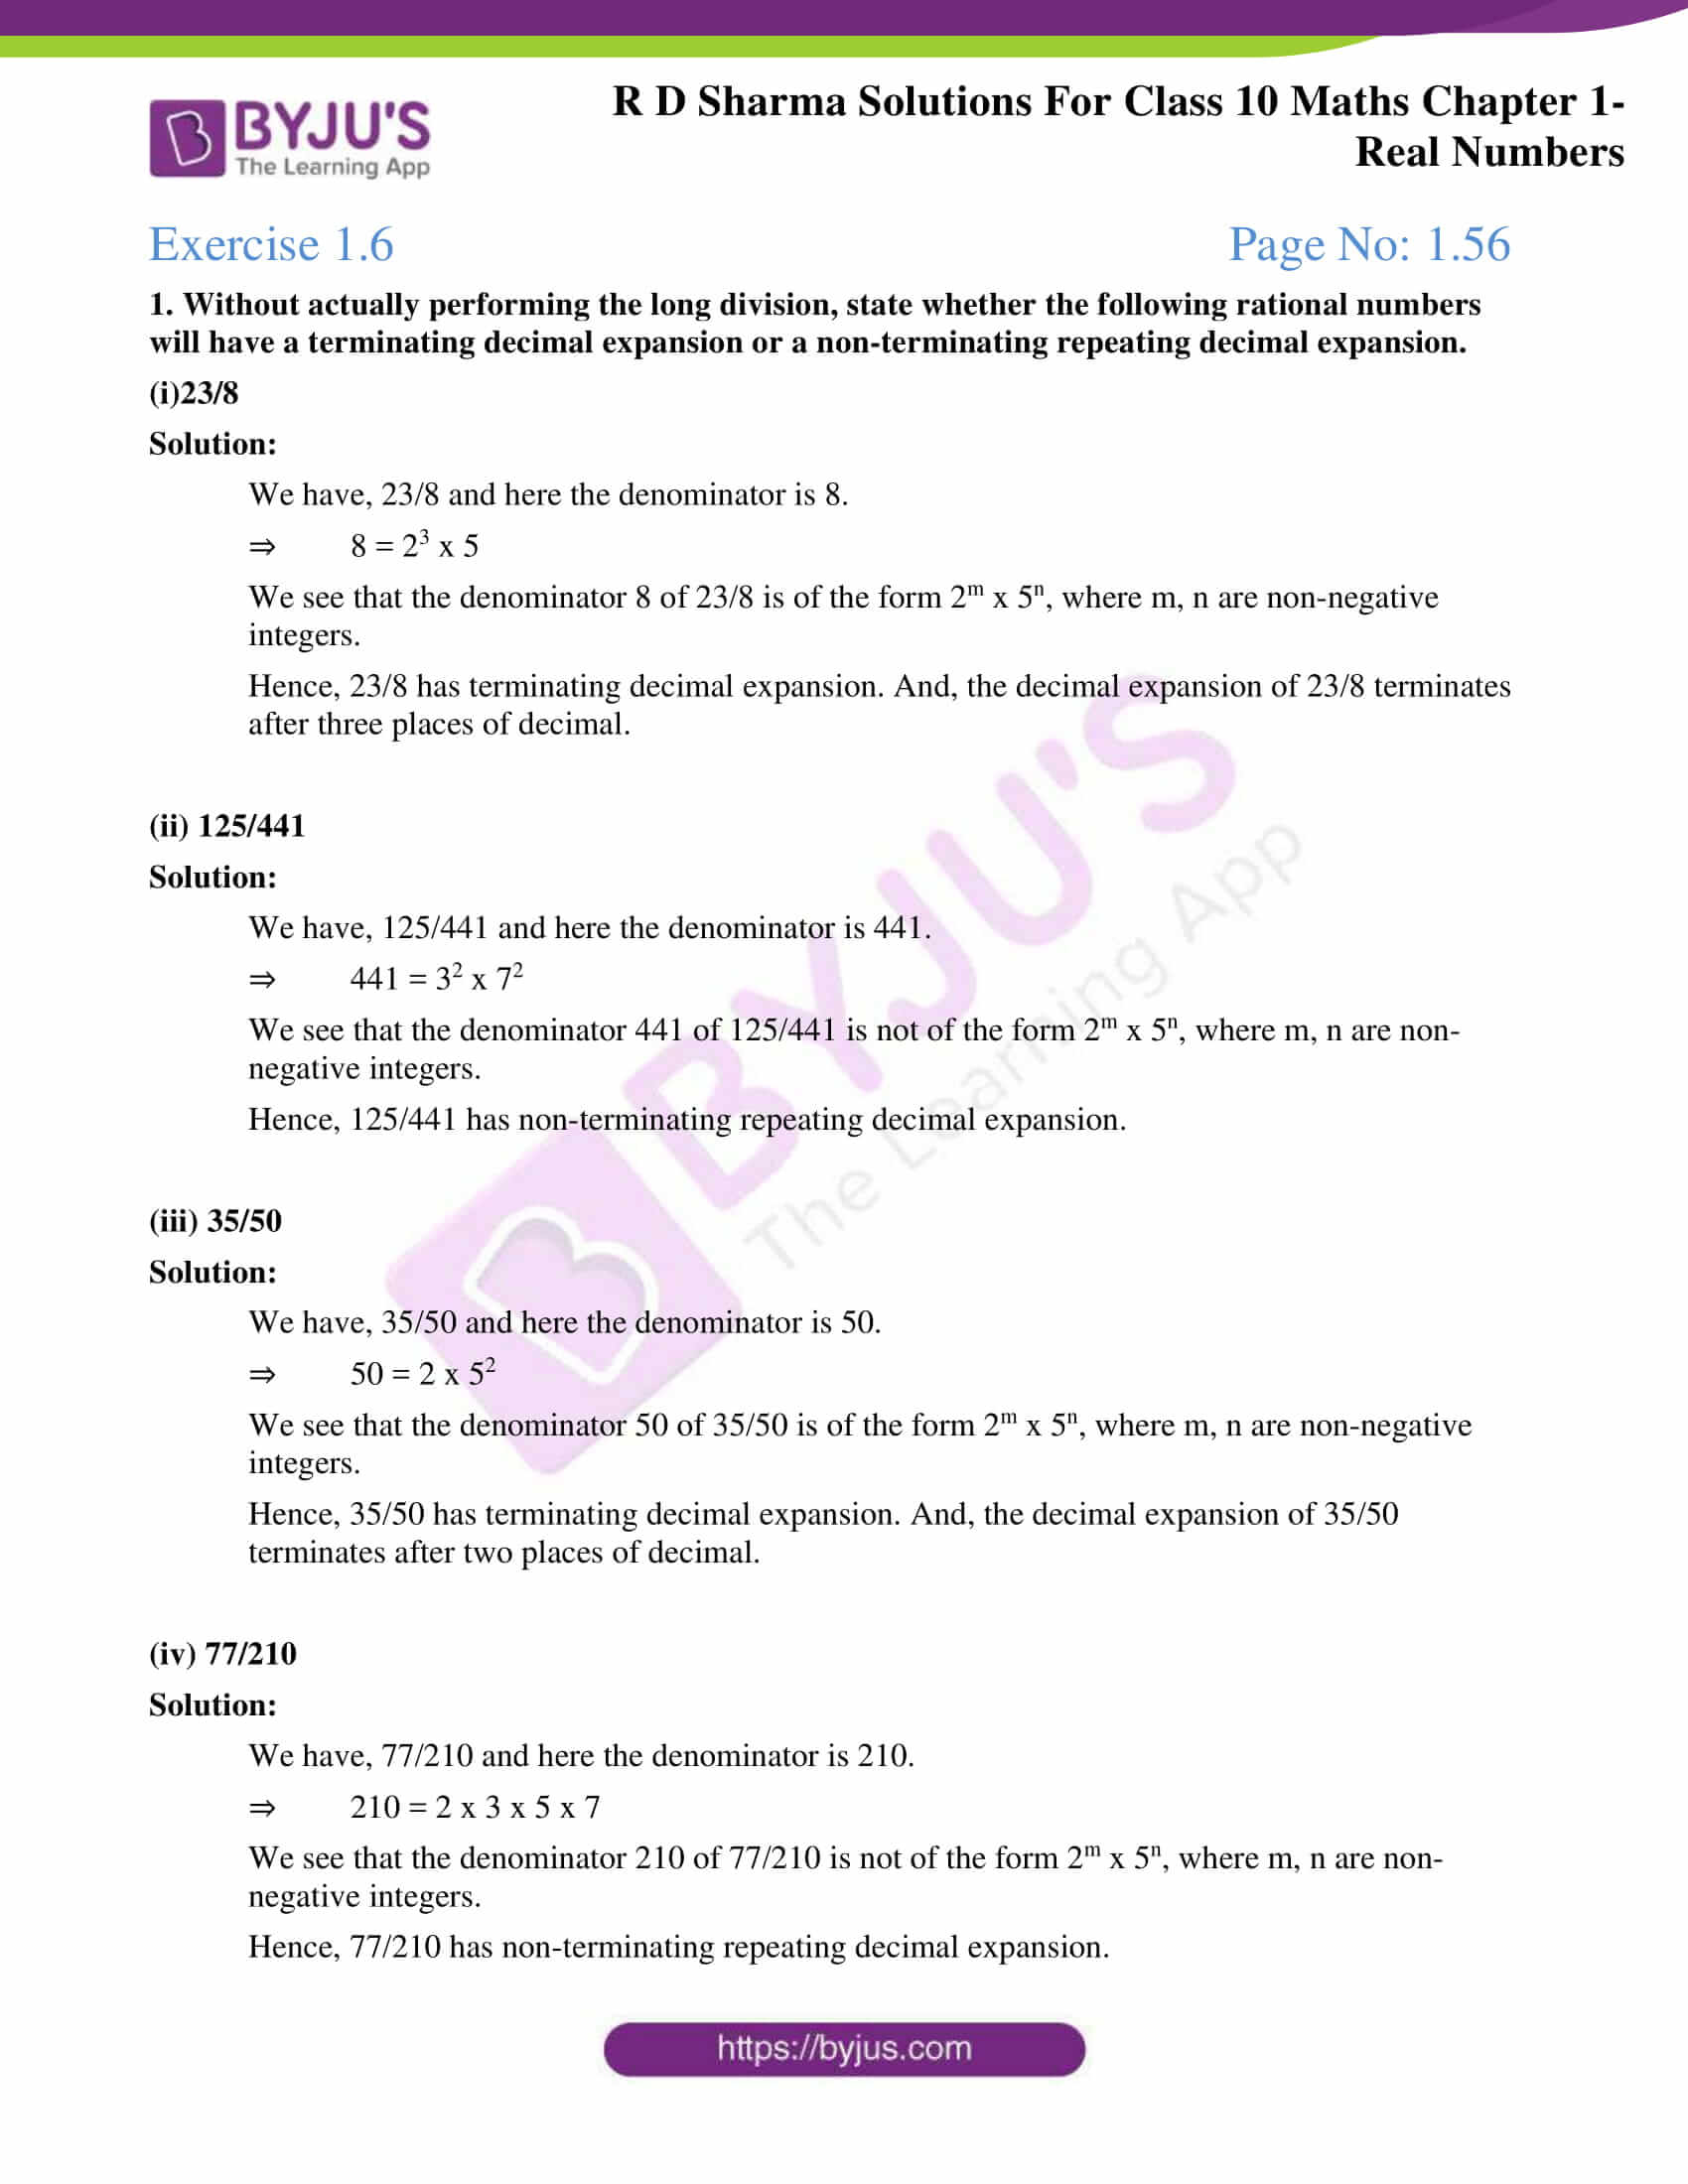 rd sharma solutions for class 10 chapter 1 ex 1.6